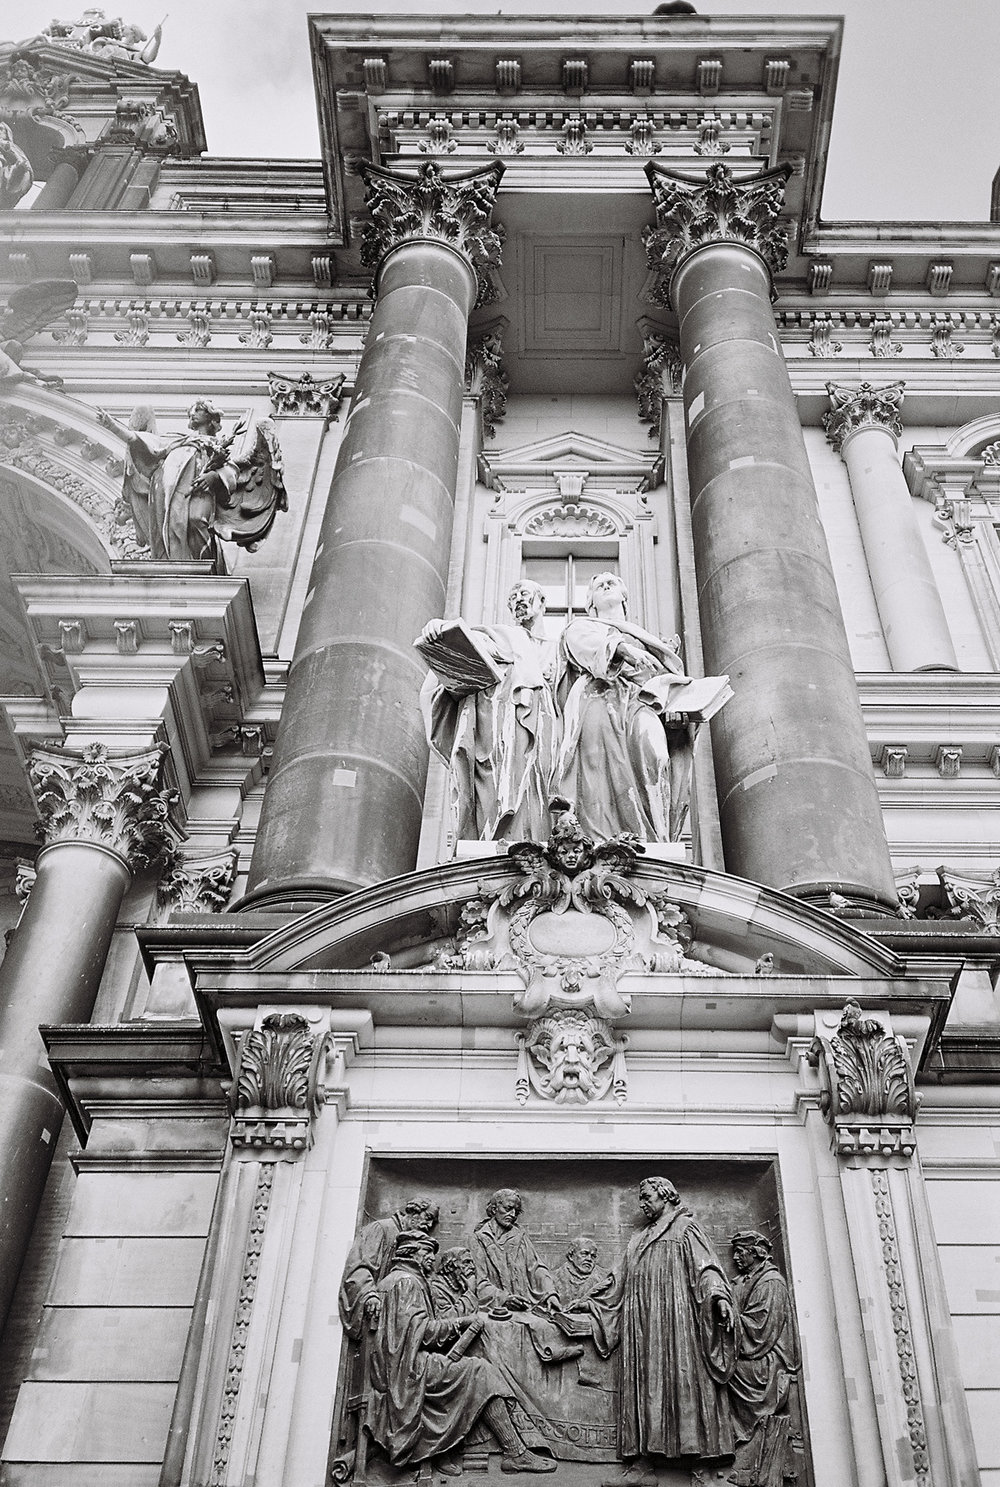 a detail of berliner dom